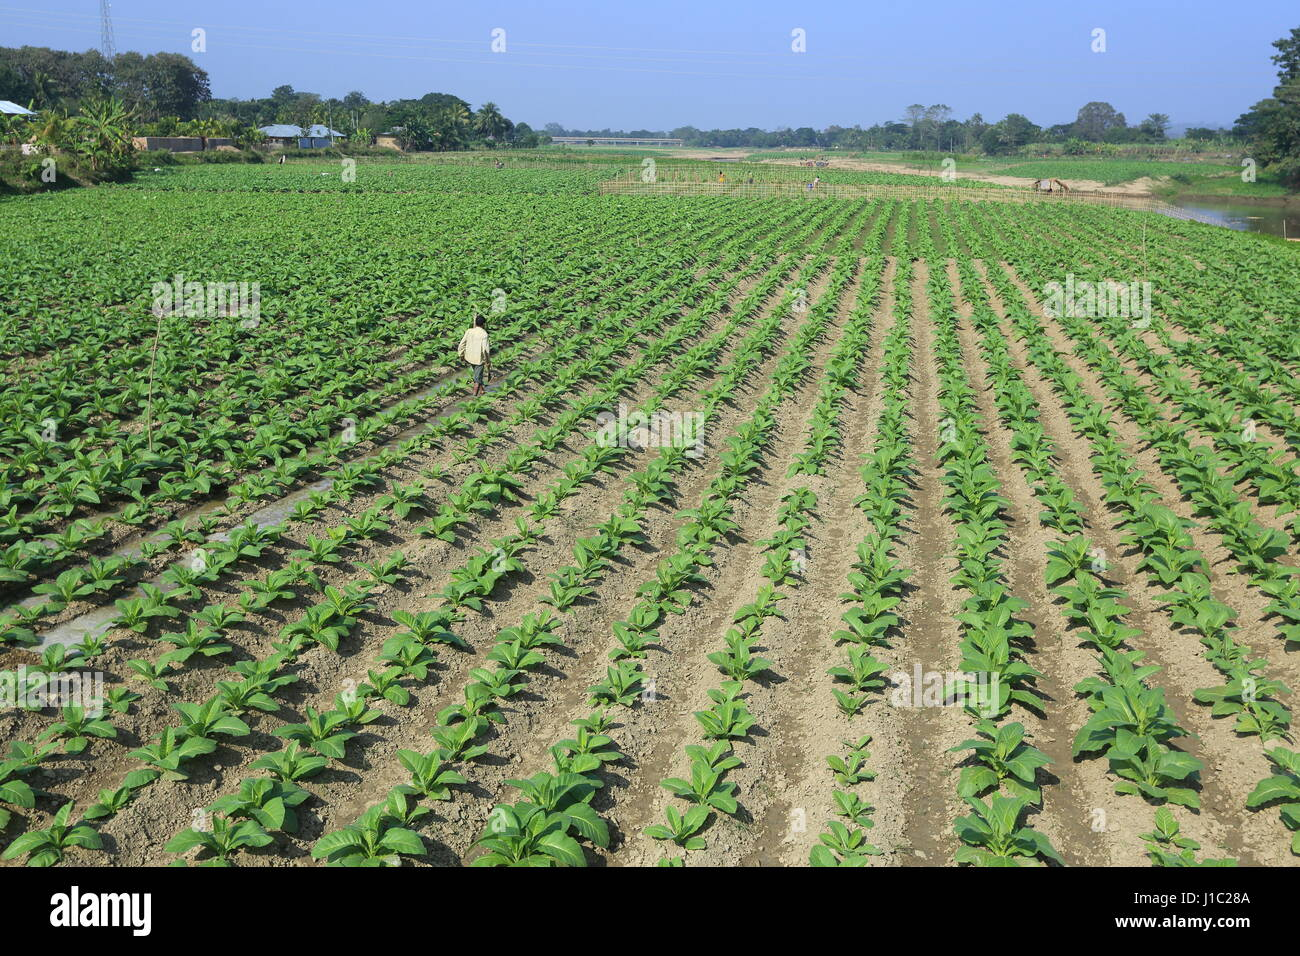 Tobacco plantation on a vast tract of land along the Maini river in Khagrachharhi's Dighinala. - Stock Image